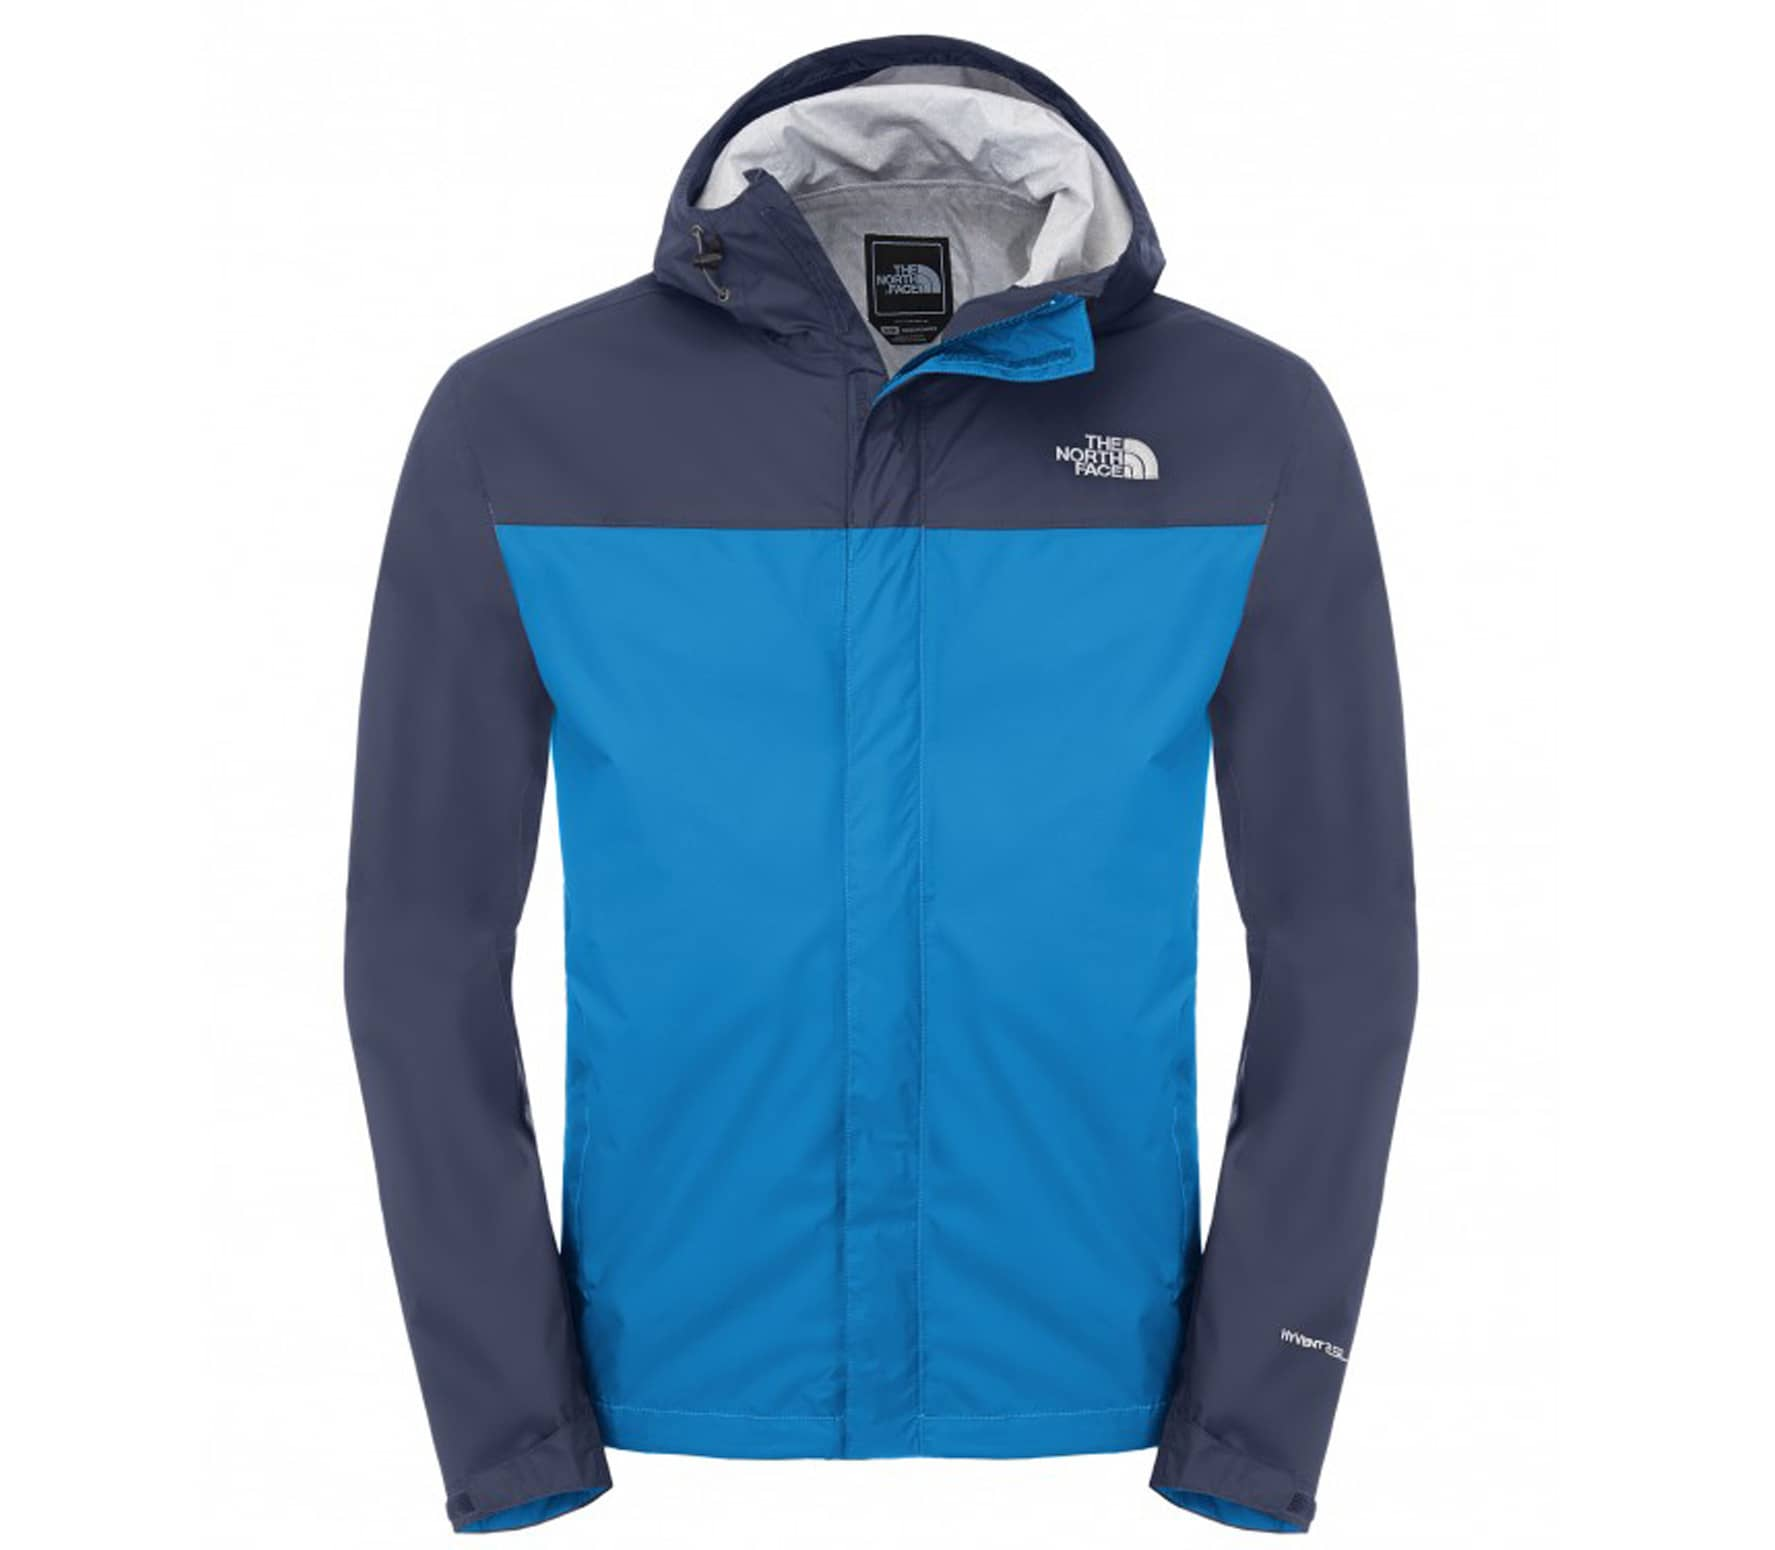 The North Face -Venture Uomo Giacca Hardshell (blu) compra online su Keller  Sports b4455c267eb